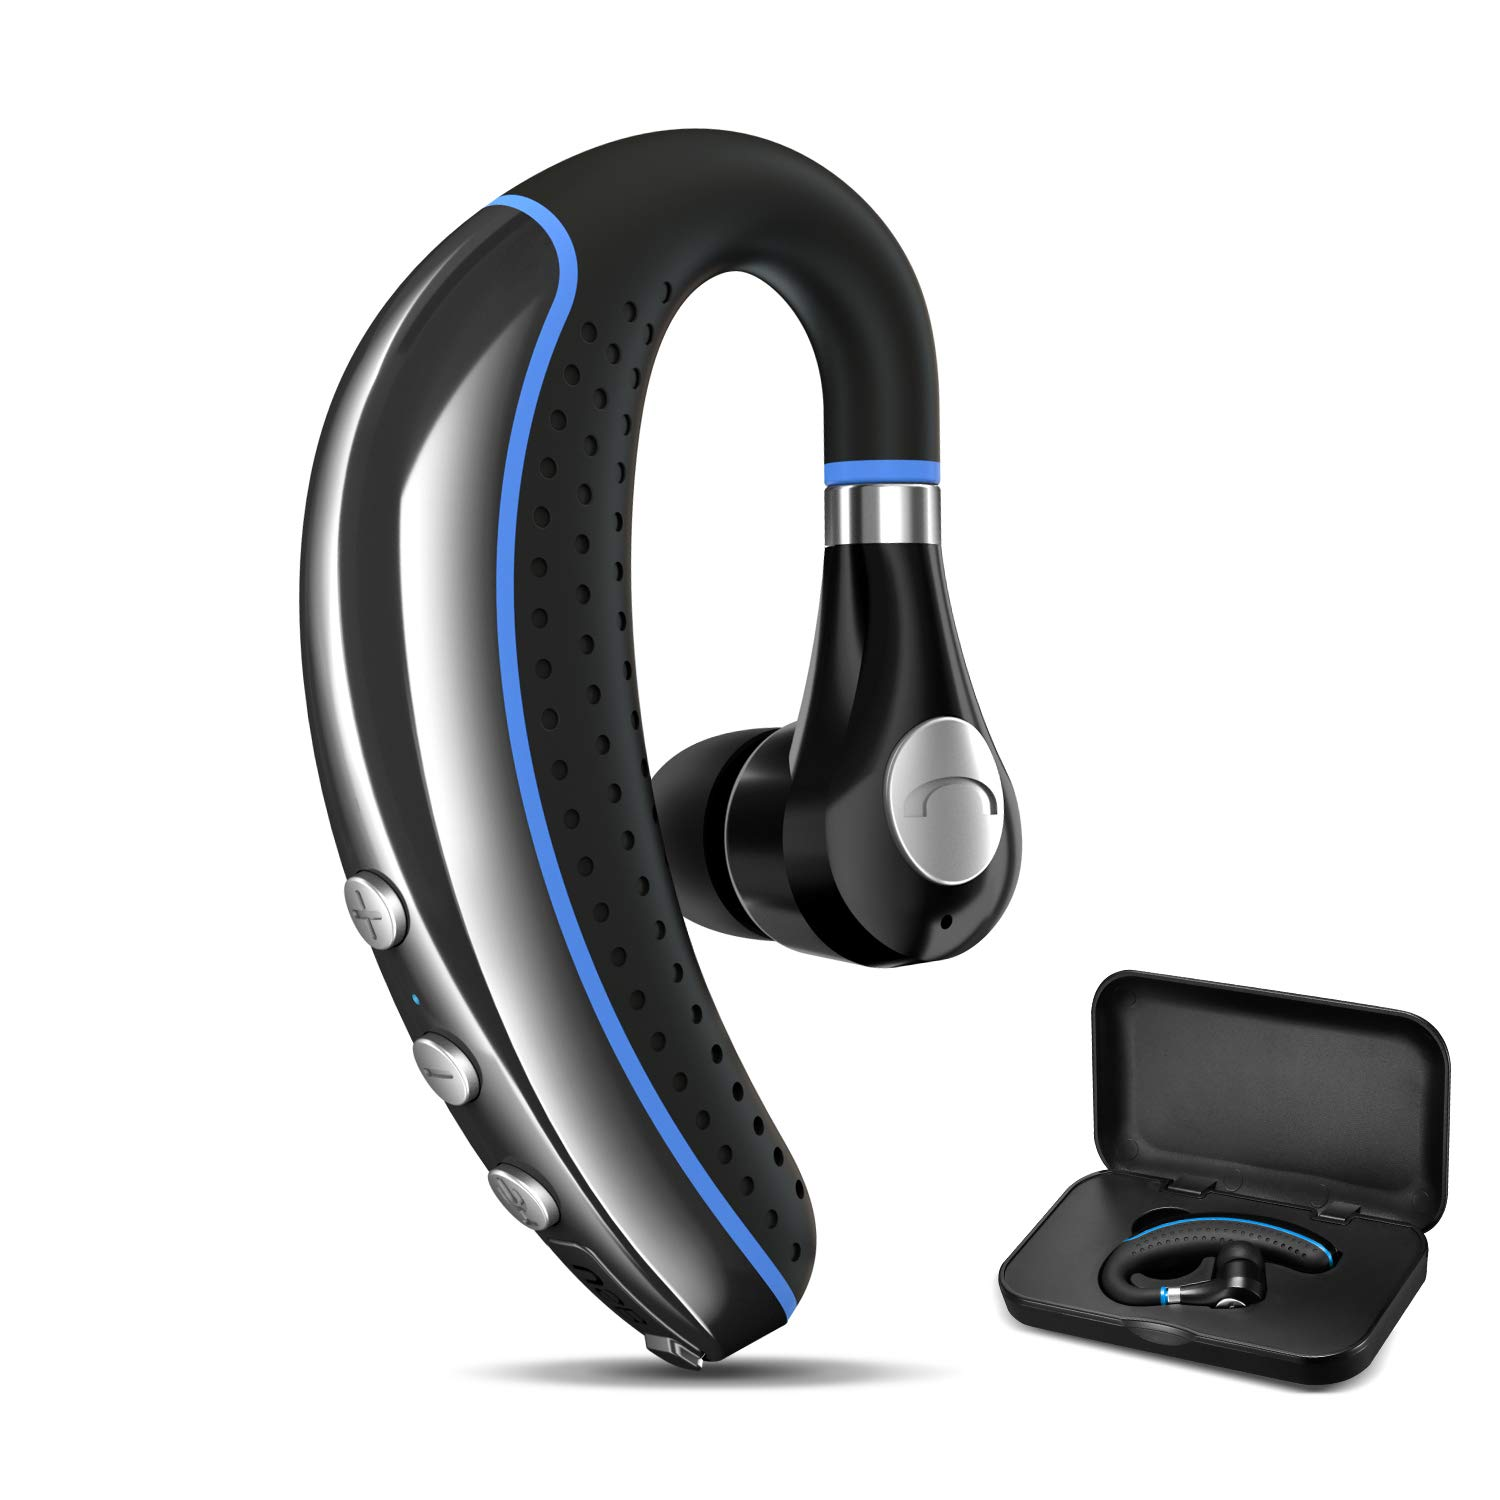 Bluetooth Headset, FimiTech Wireless Earpiece V5.0 Ultralight Hands Free Business Earphone with Mic for Business/Office/Driving by FIMITECH